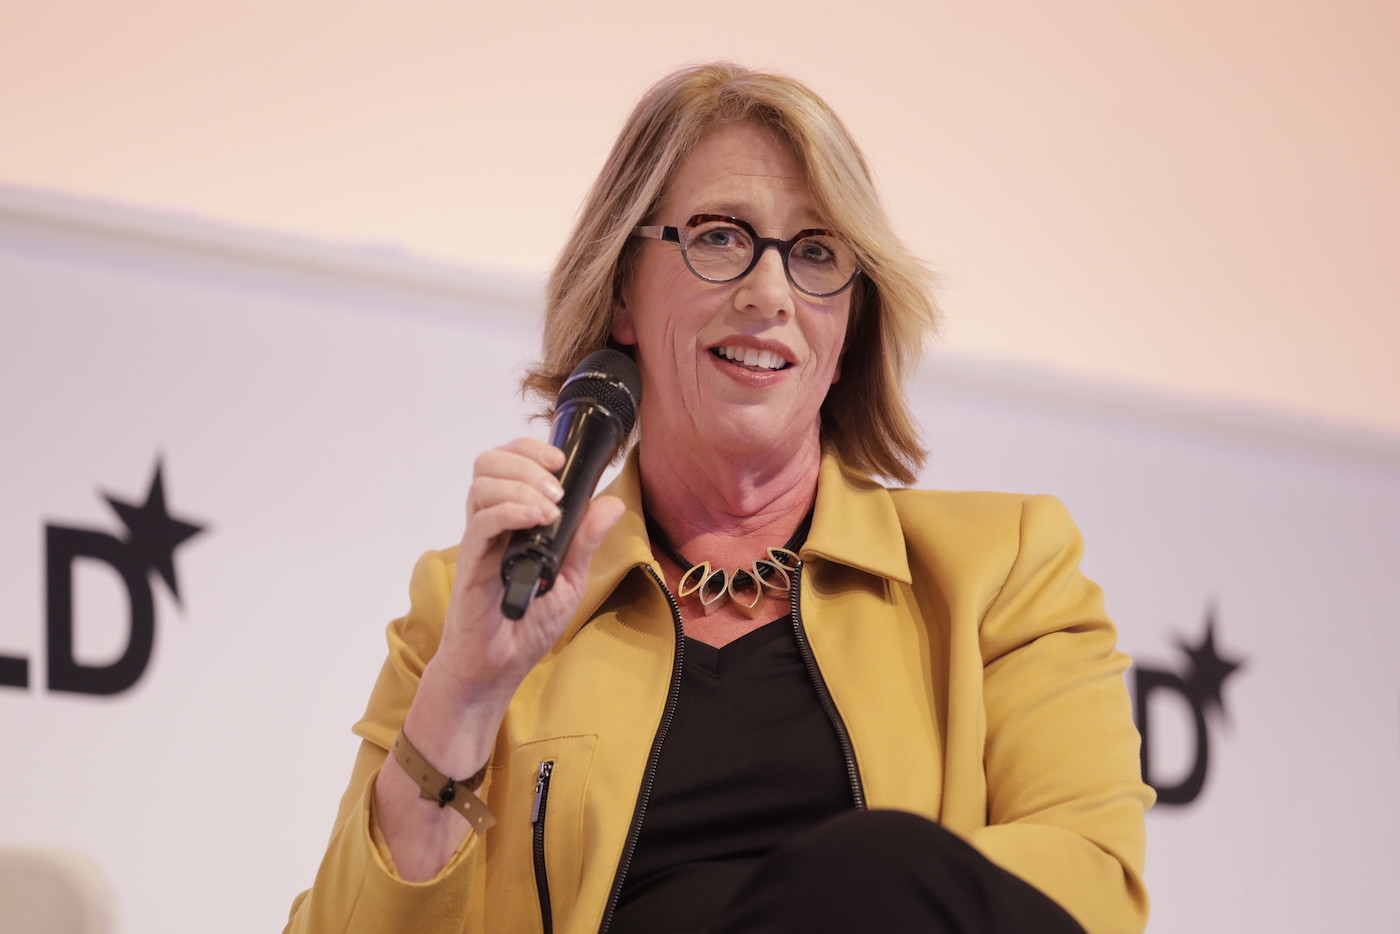 Mary Lou Jepsen, DLD conference, 2018